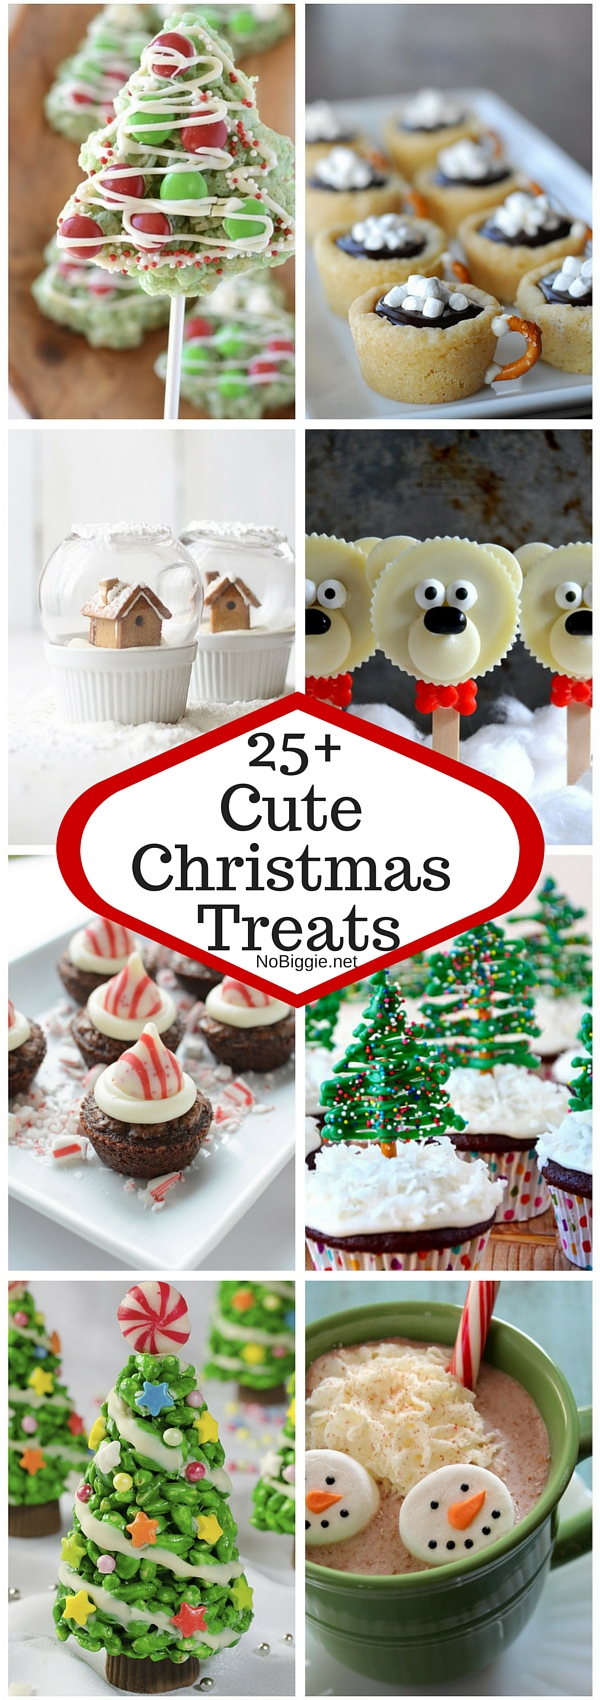 25 Cute Christmas Treats Nobiggie